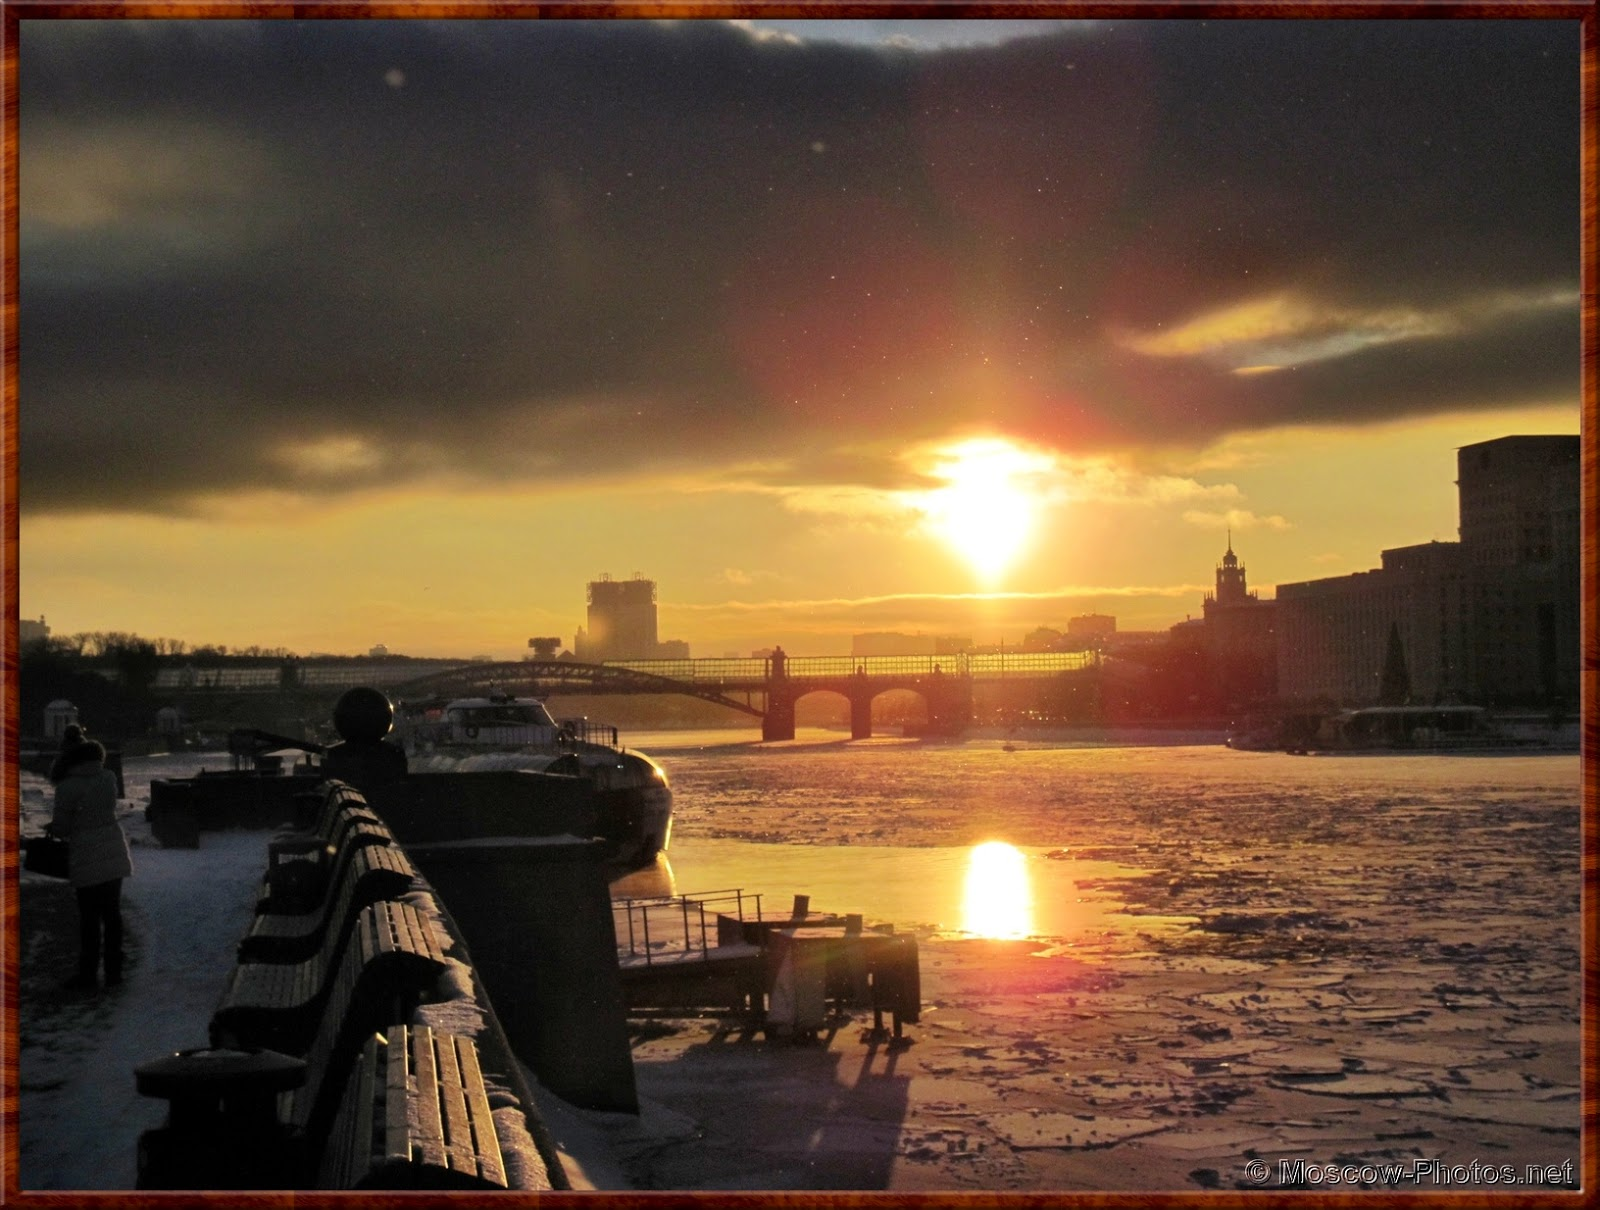 Sunset over Moscow River